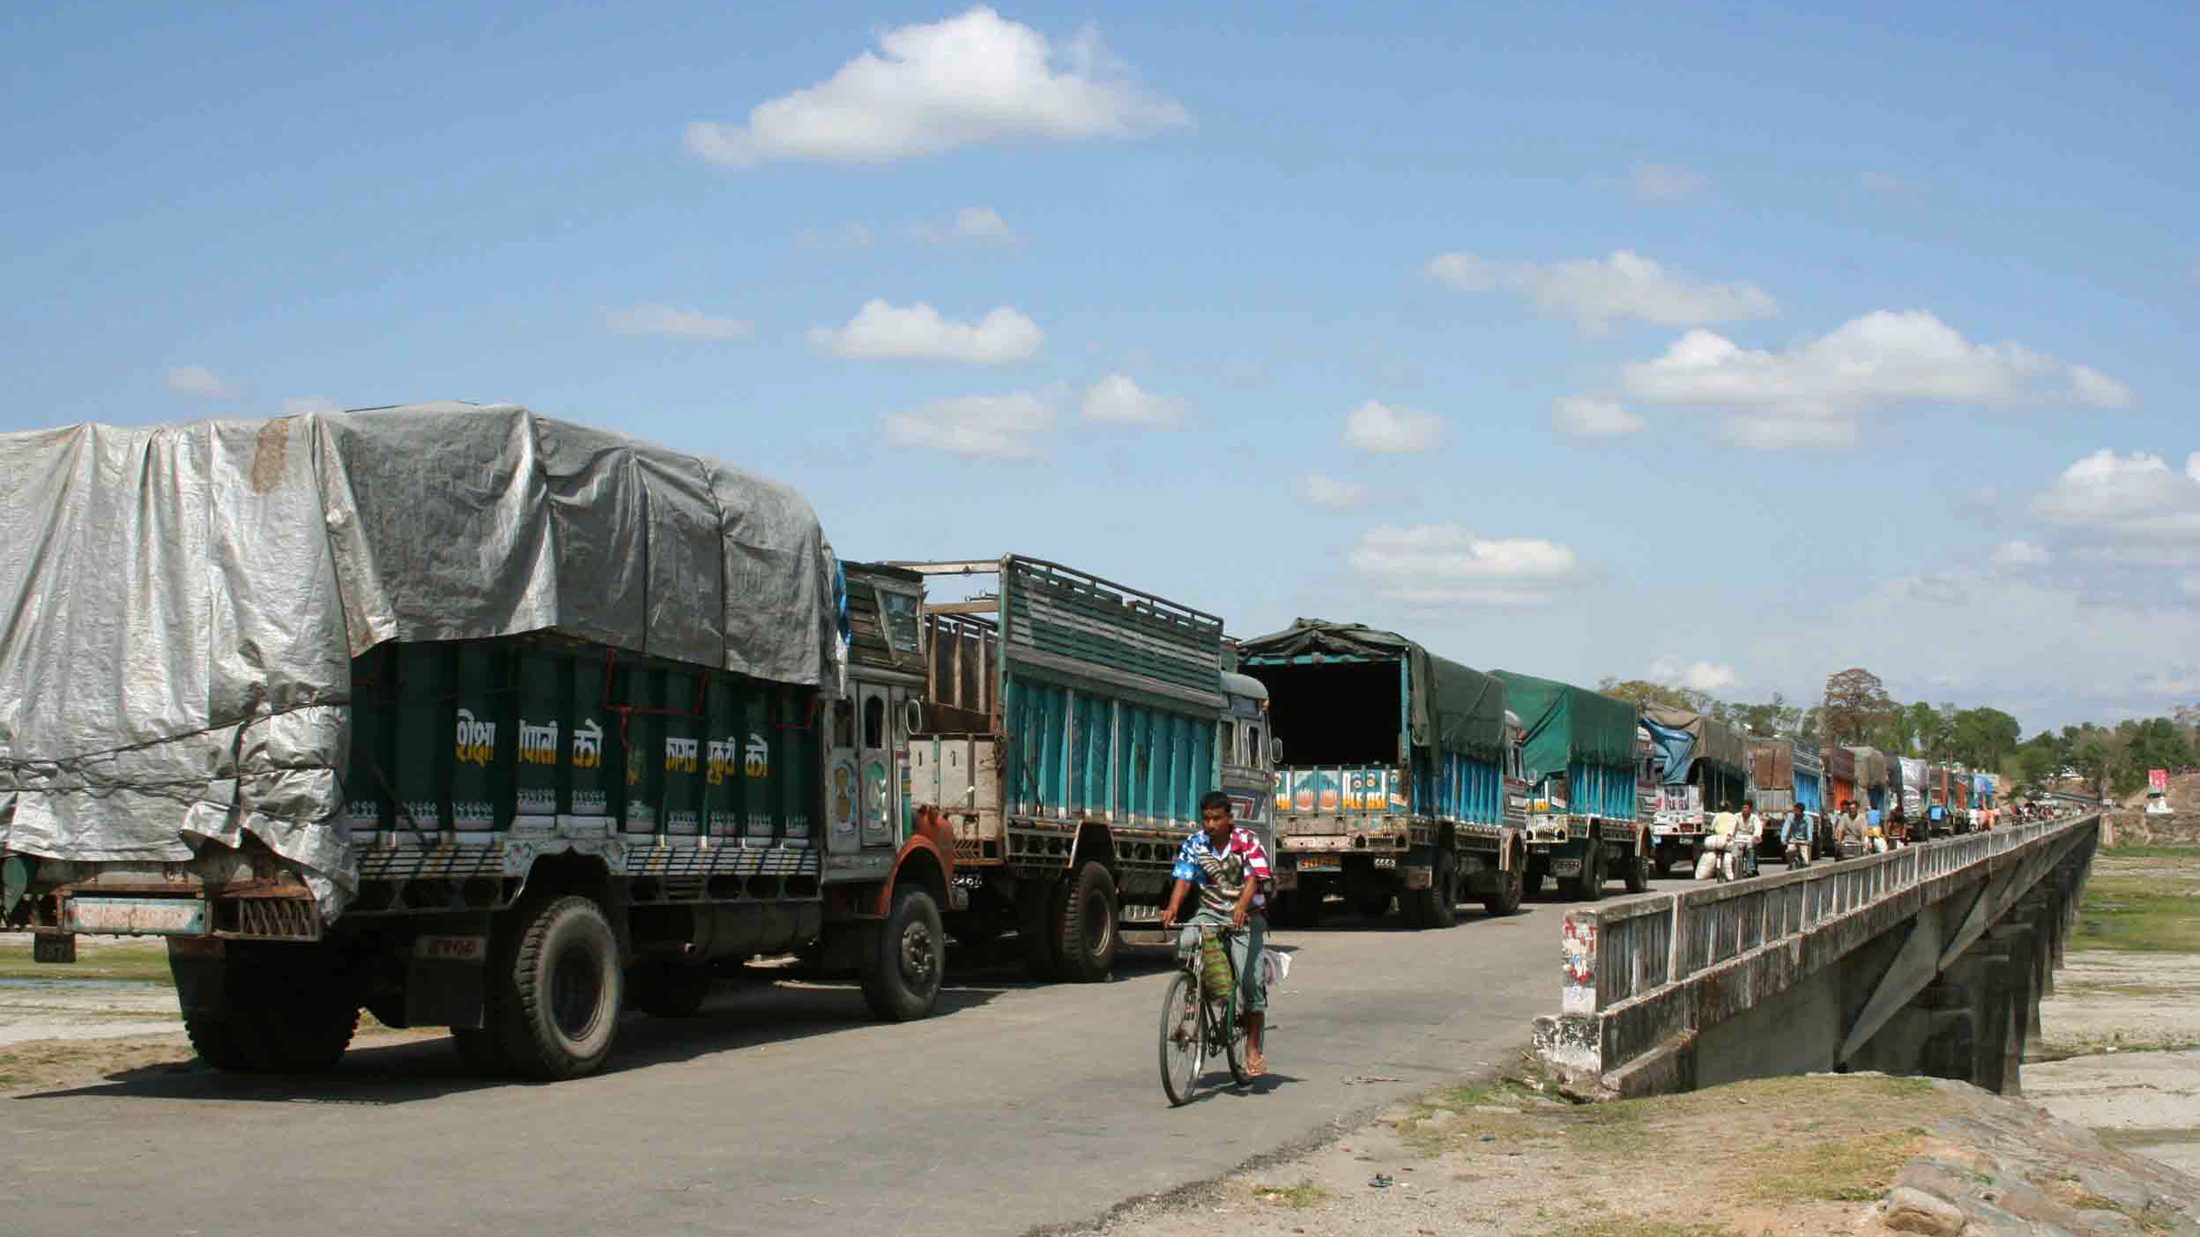 A Nepali man rides in front of trucks at the India-Nepal Panitanki border in eastern Nepal